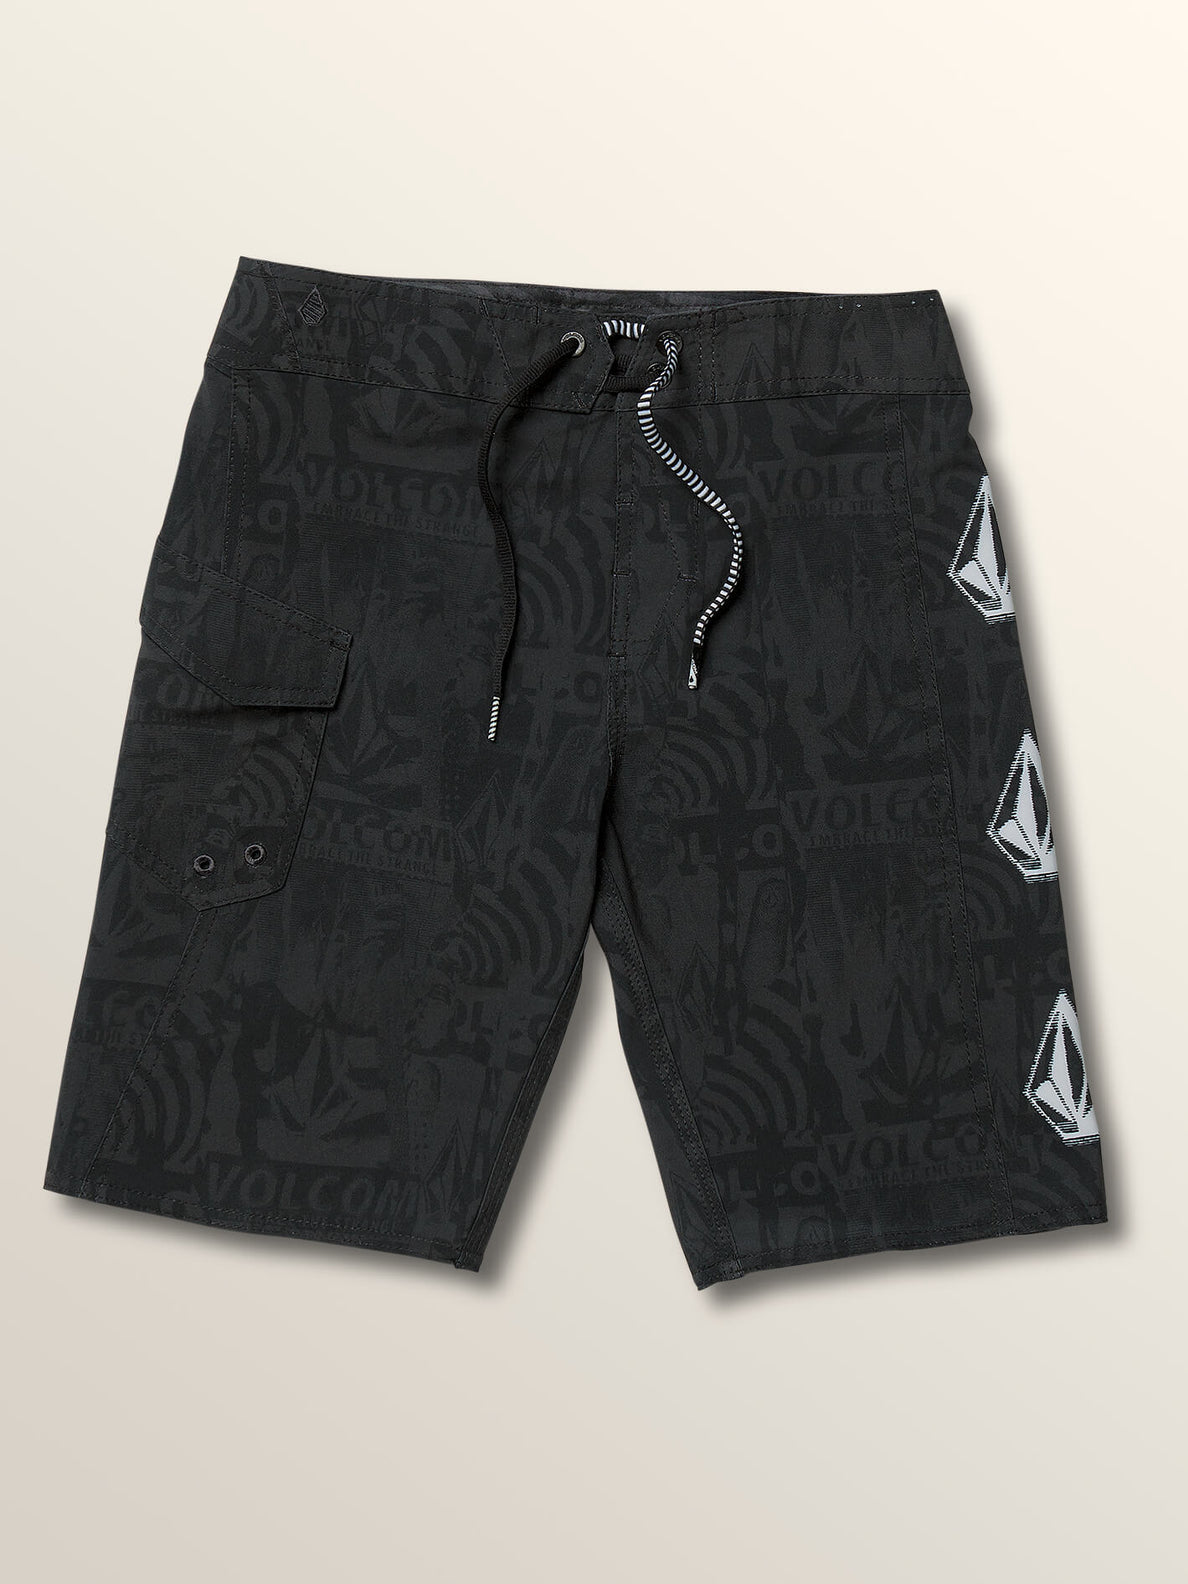 Big Boys Deadly Stones Mod Boardshorts In Black, Front View